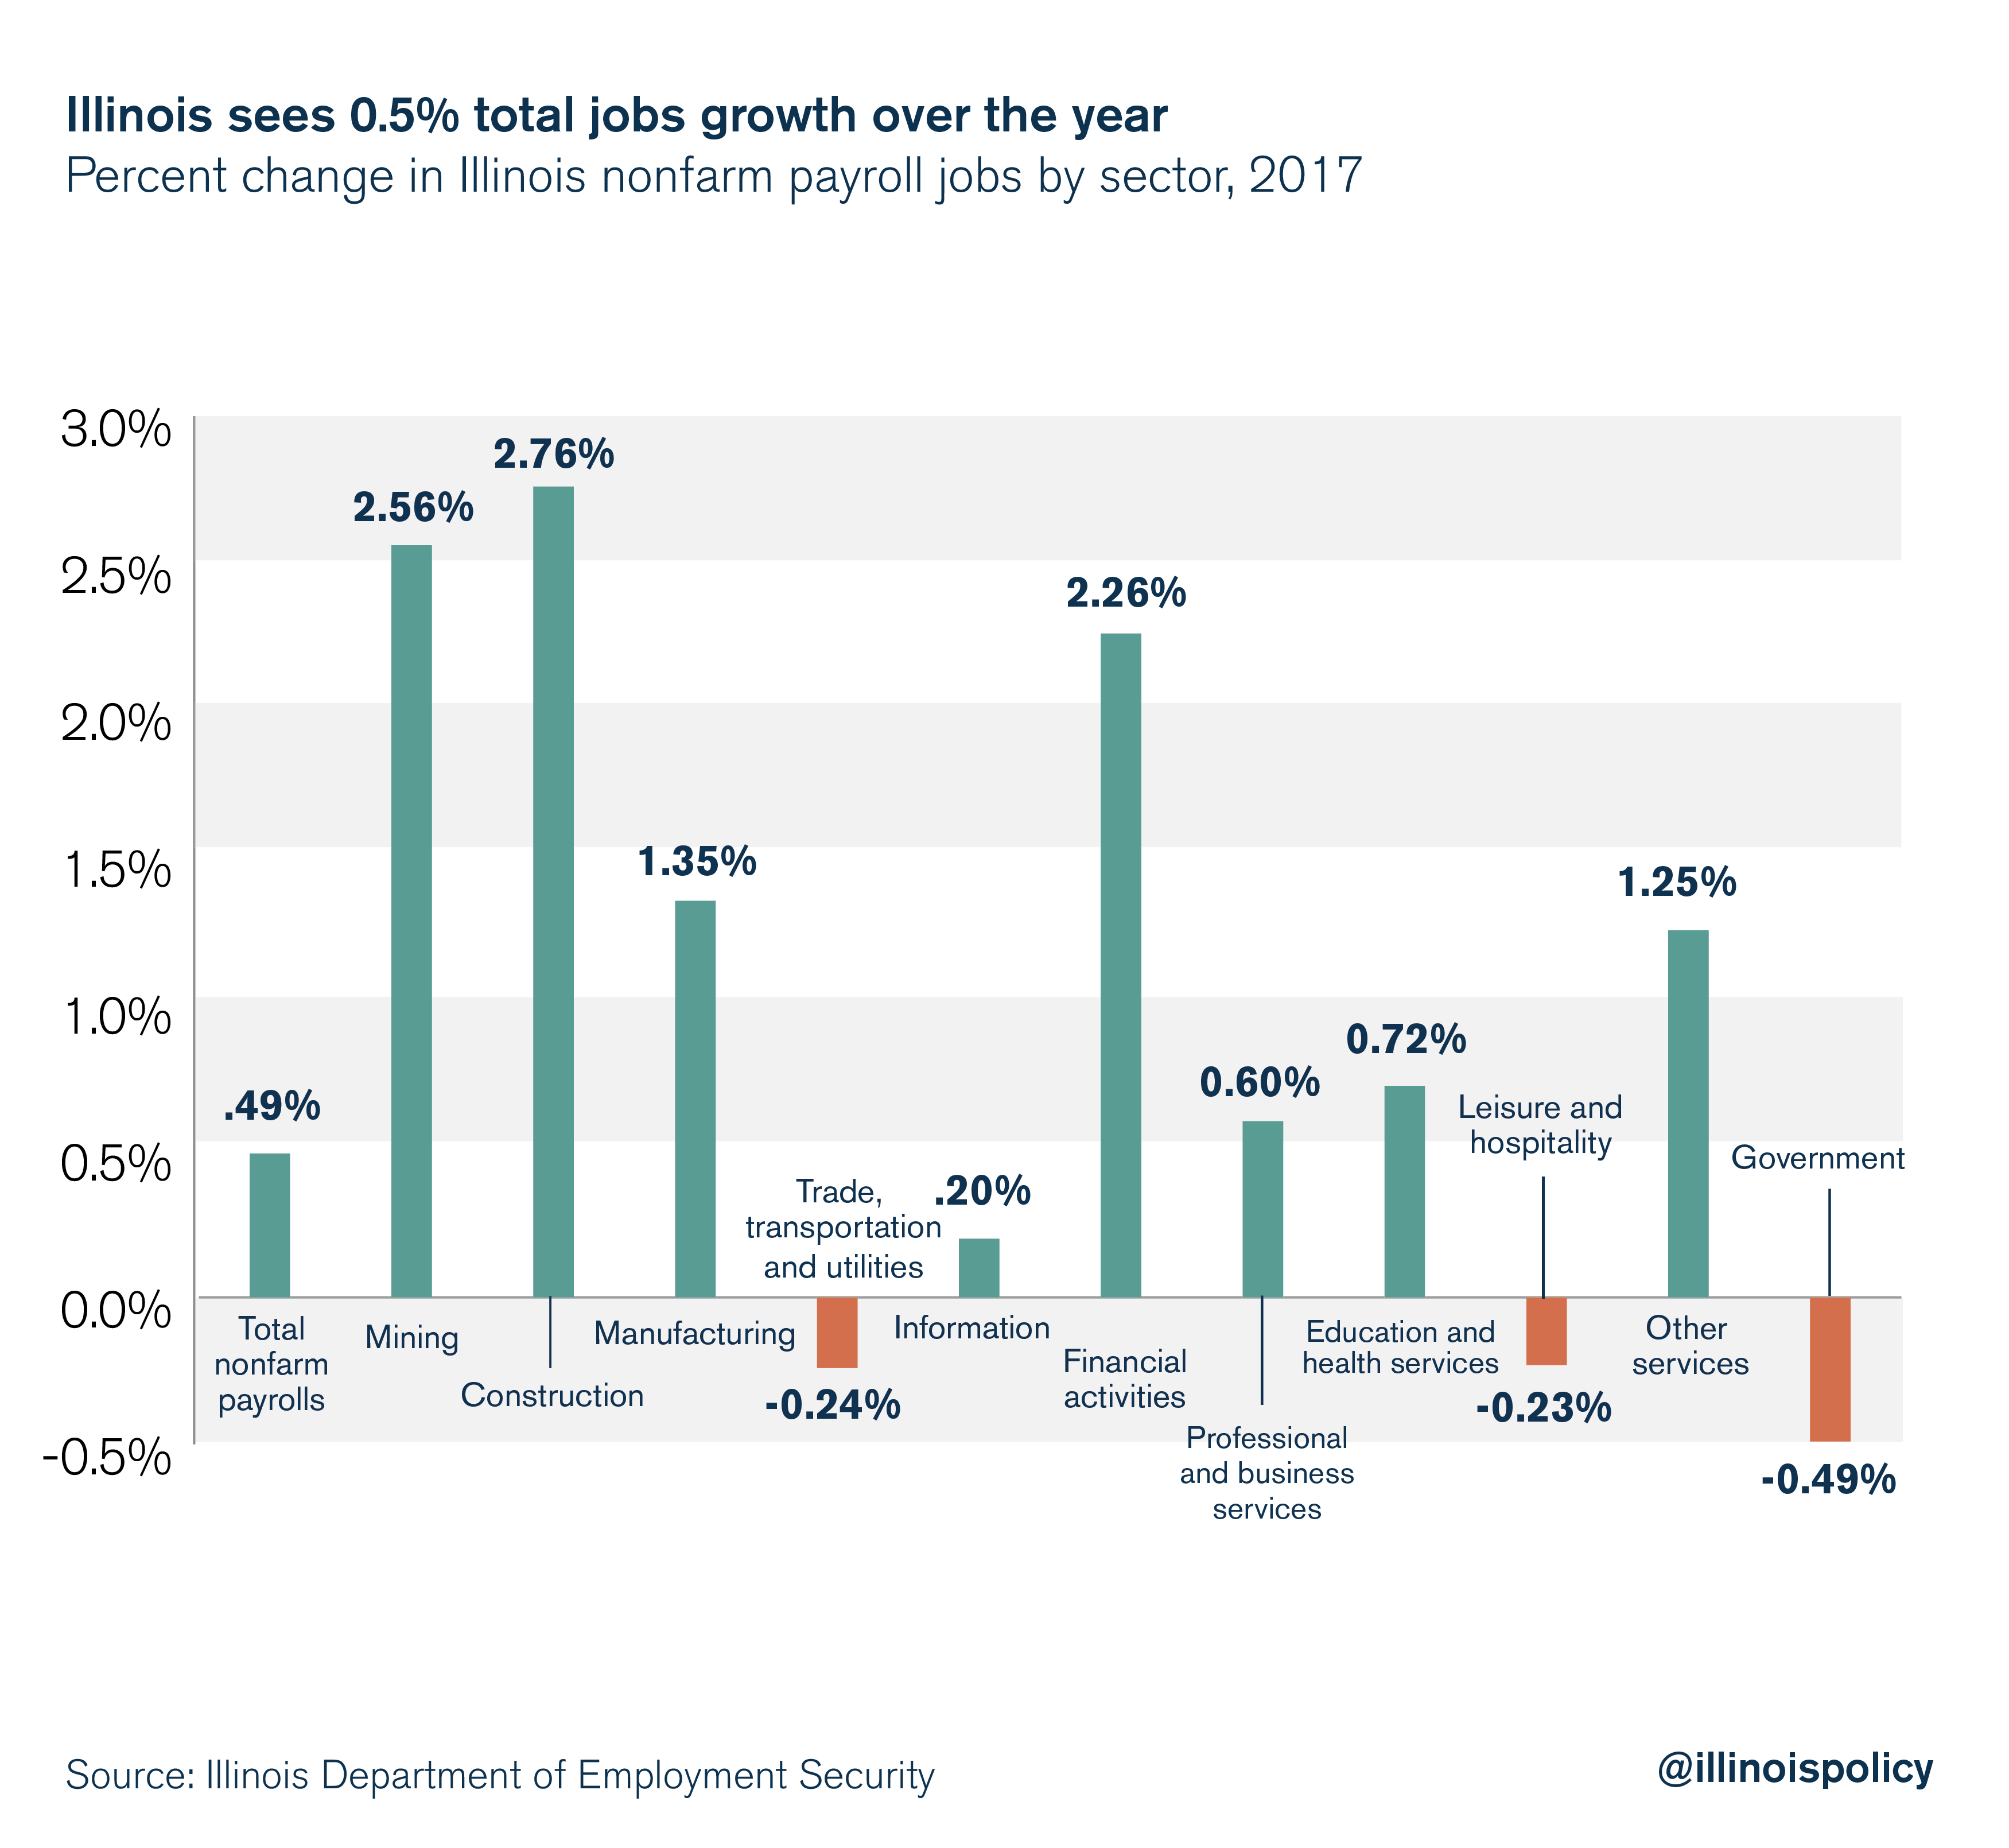 Illinois sees 0.5% total jobs growth over the year